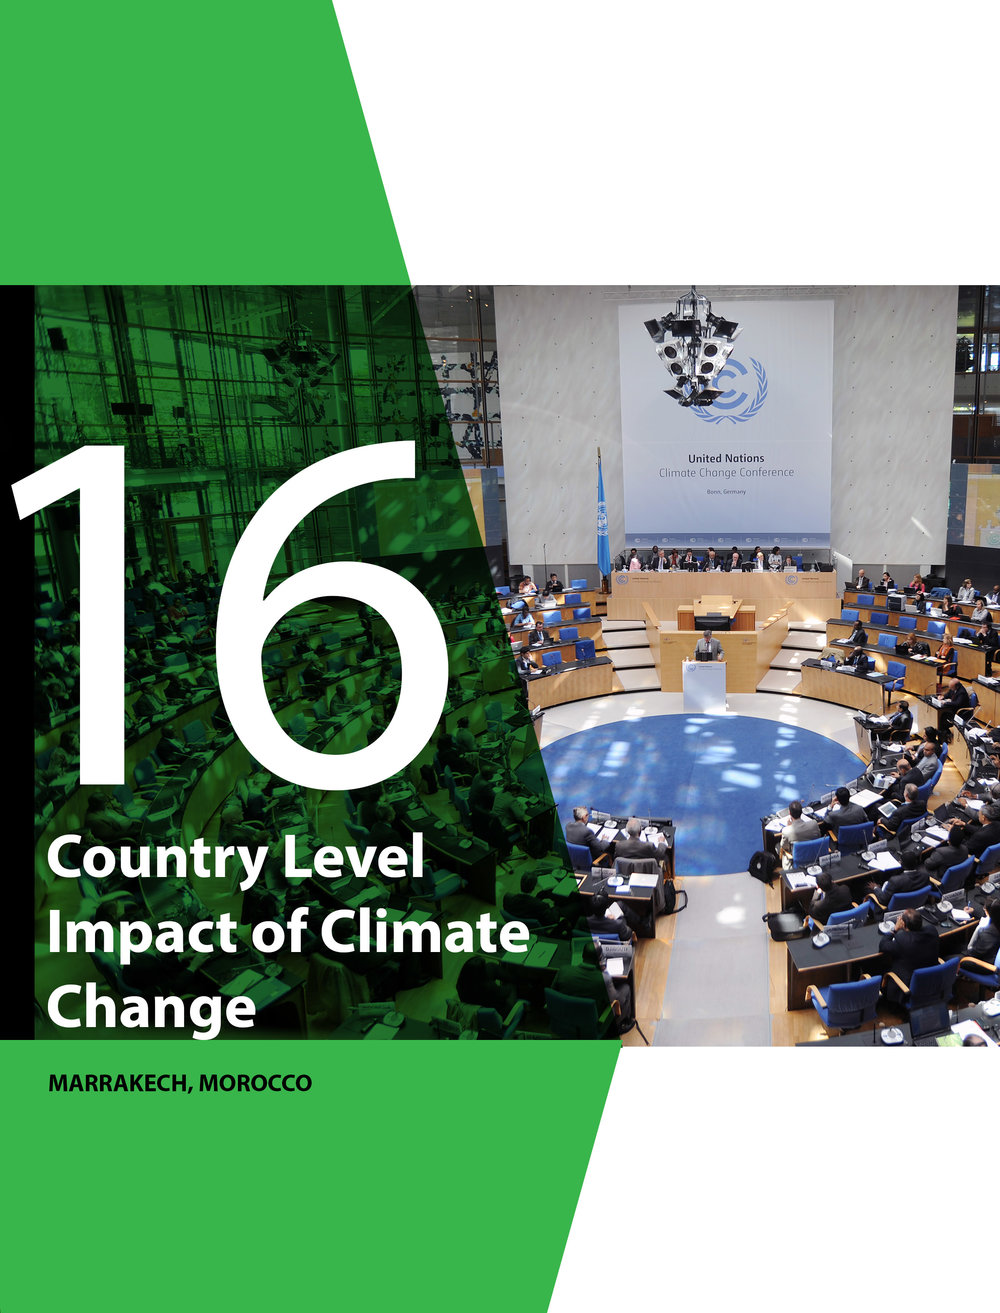 United Nations: Country Level Impact of Climate Change 2016 Report Cover